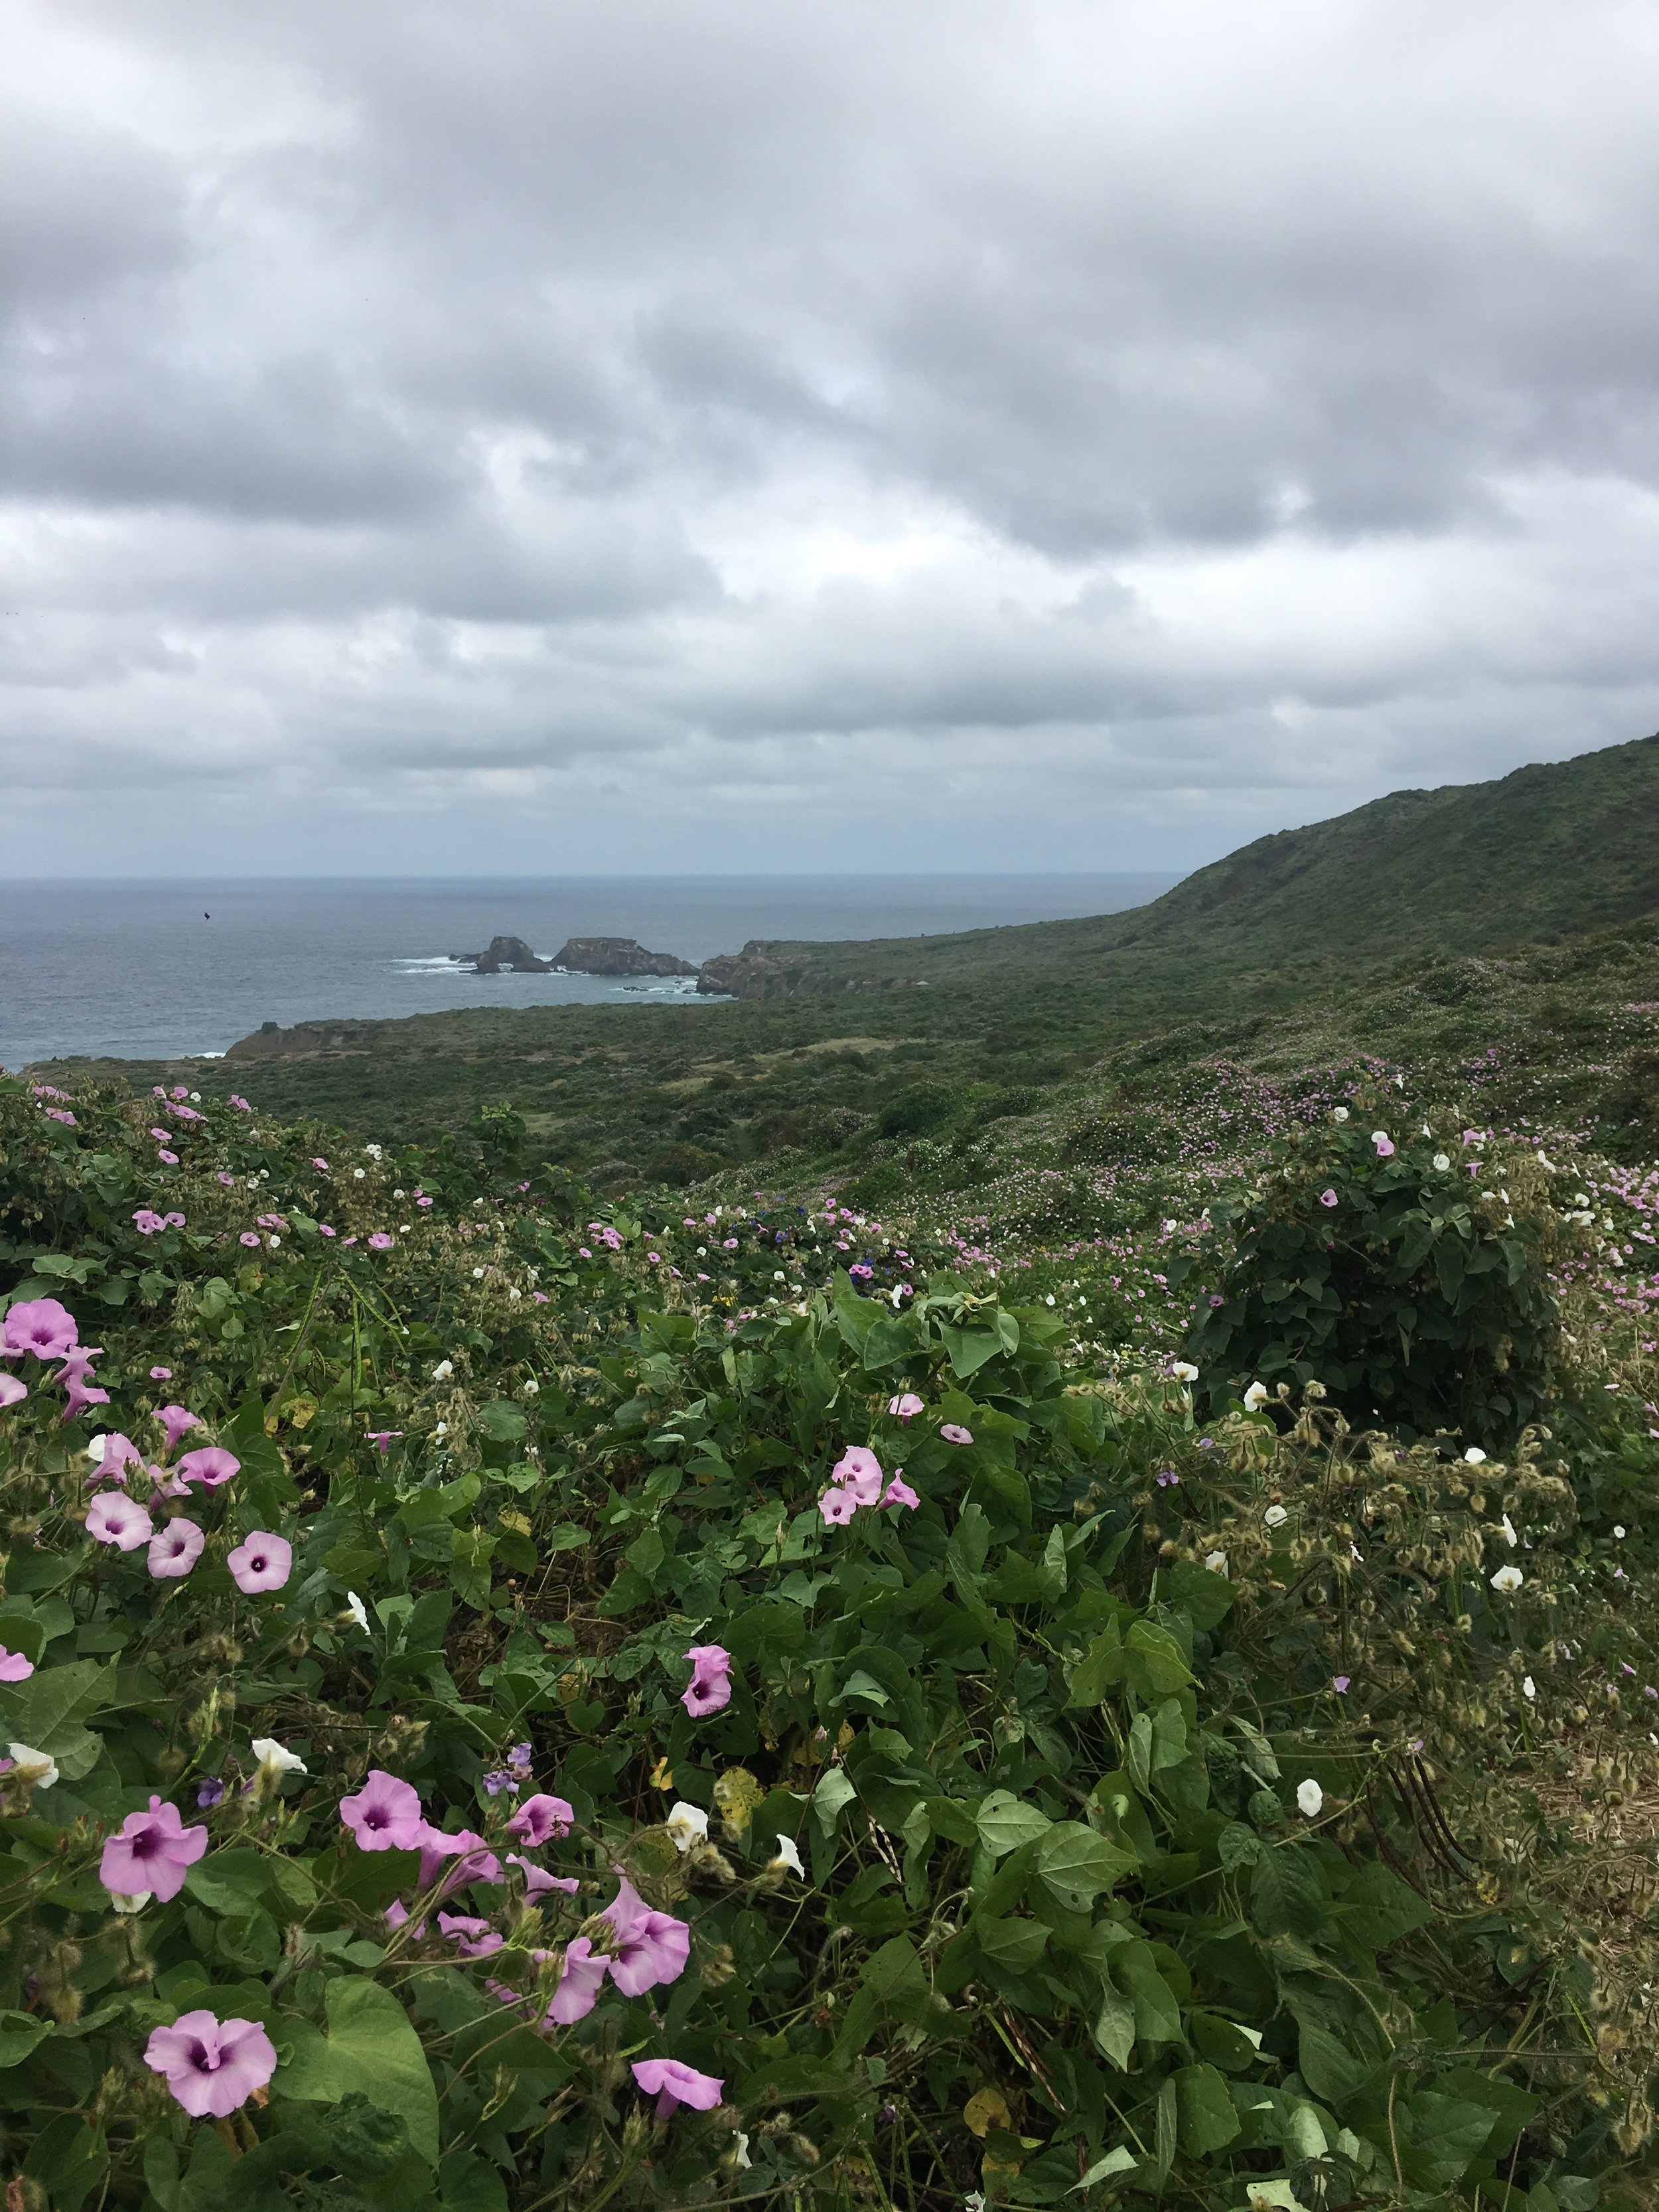 The scenery on this island was absolutely breathtaking!